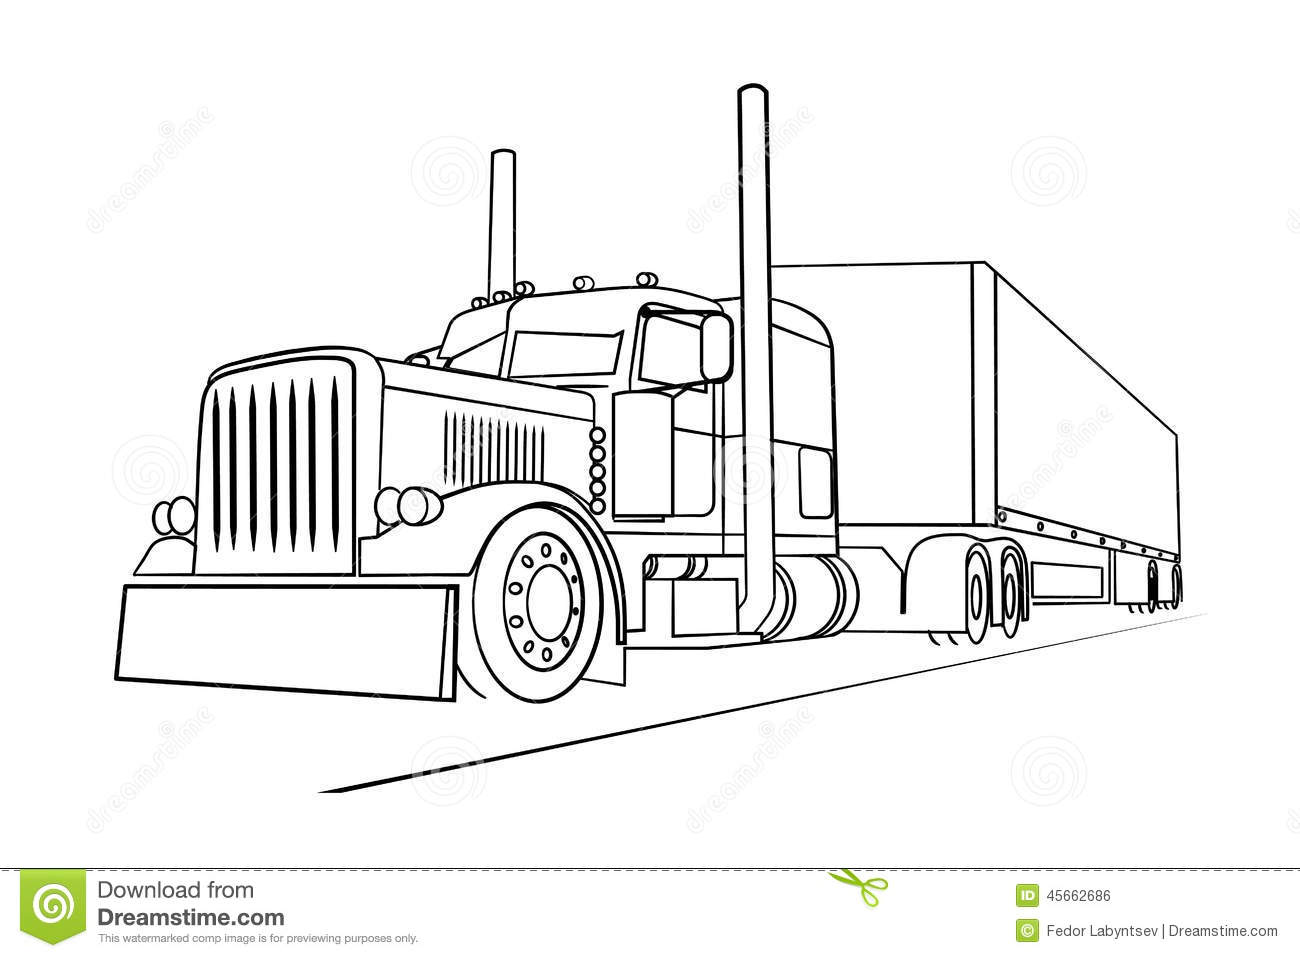 Stock Illustration Drawing Truck Transporting Load Image Presented Image45662686 on kenworth semi trucks